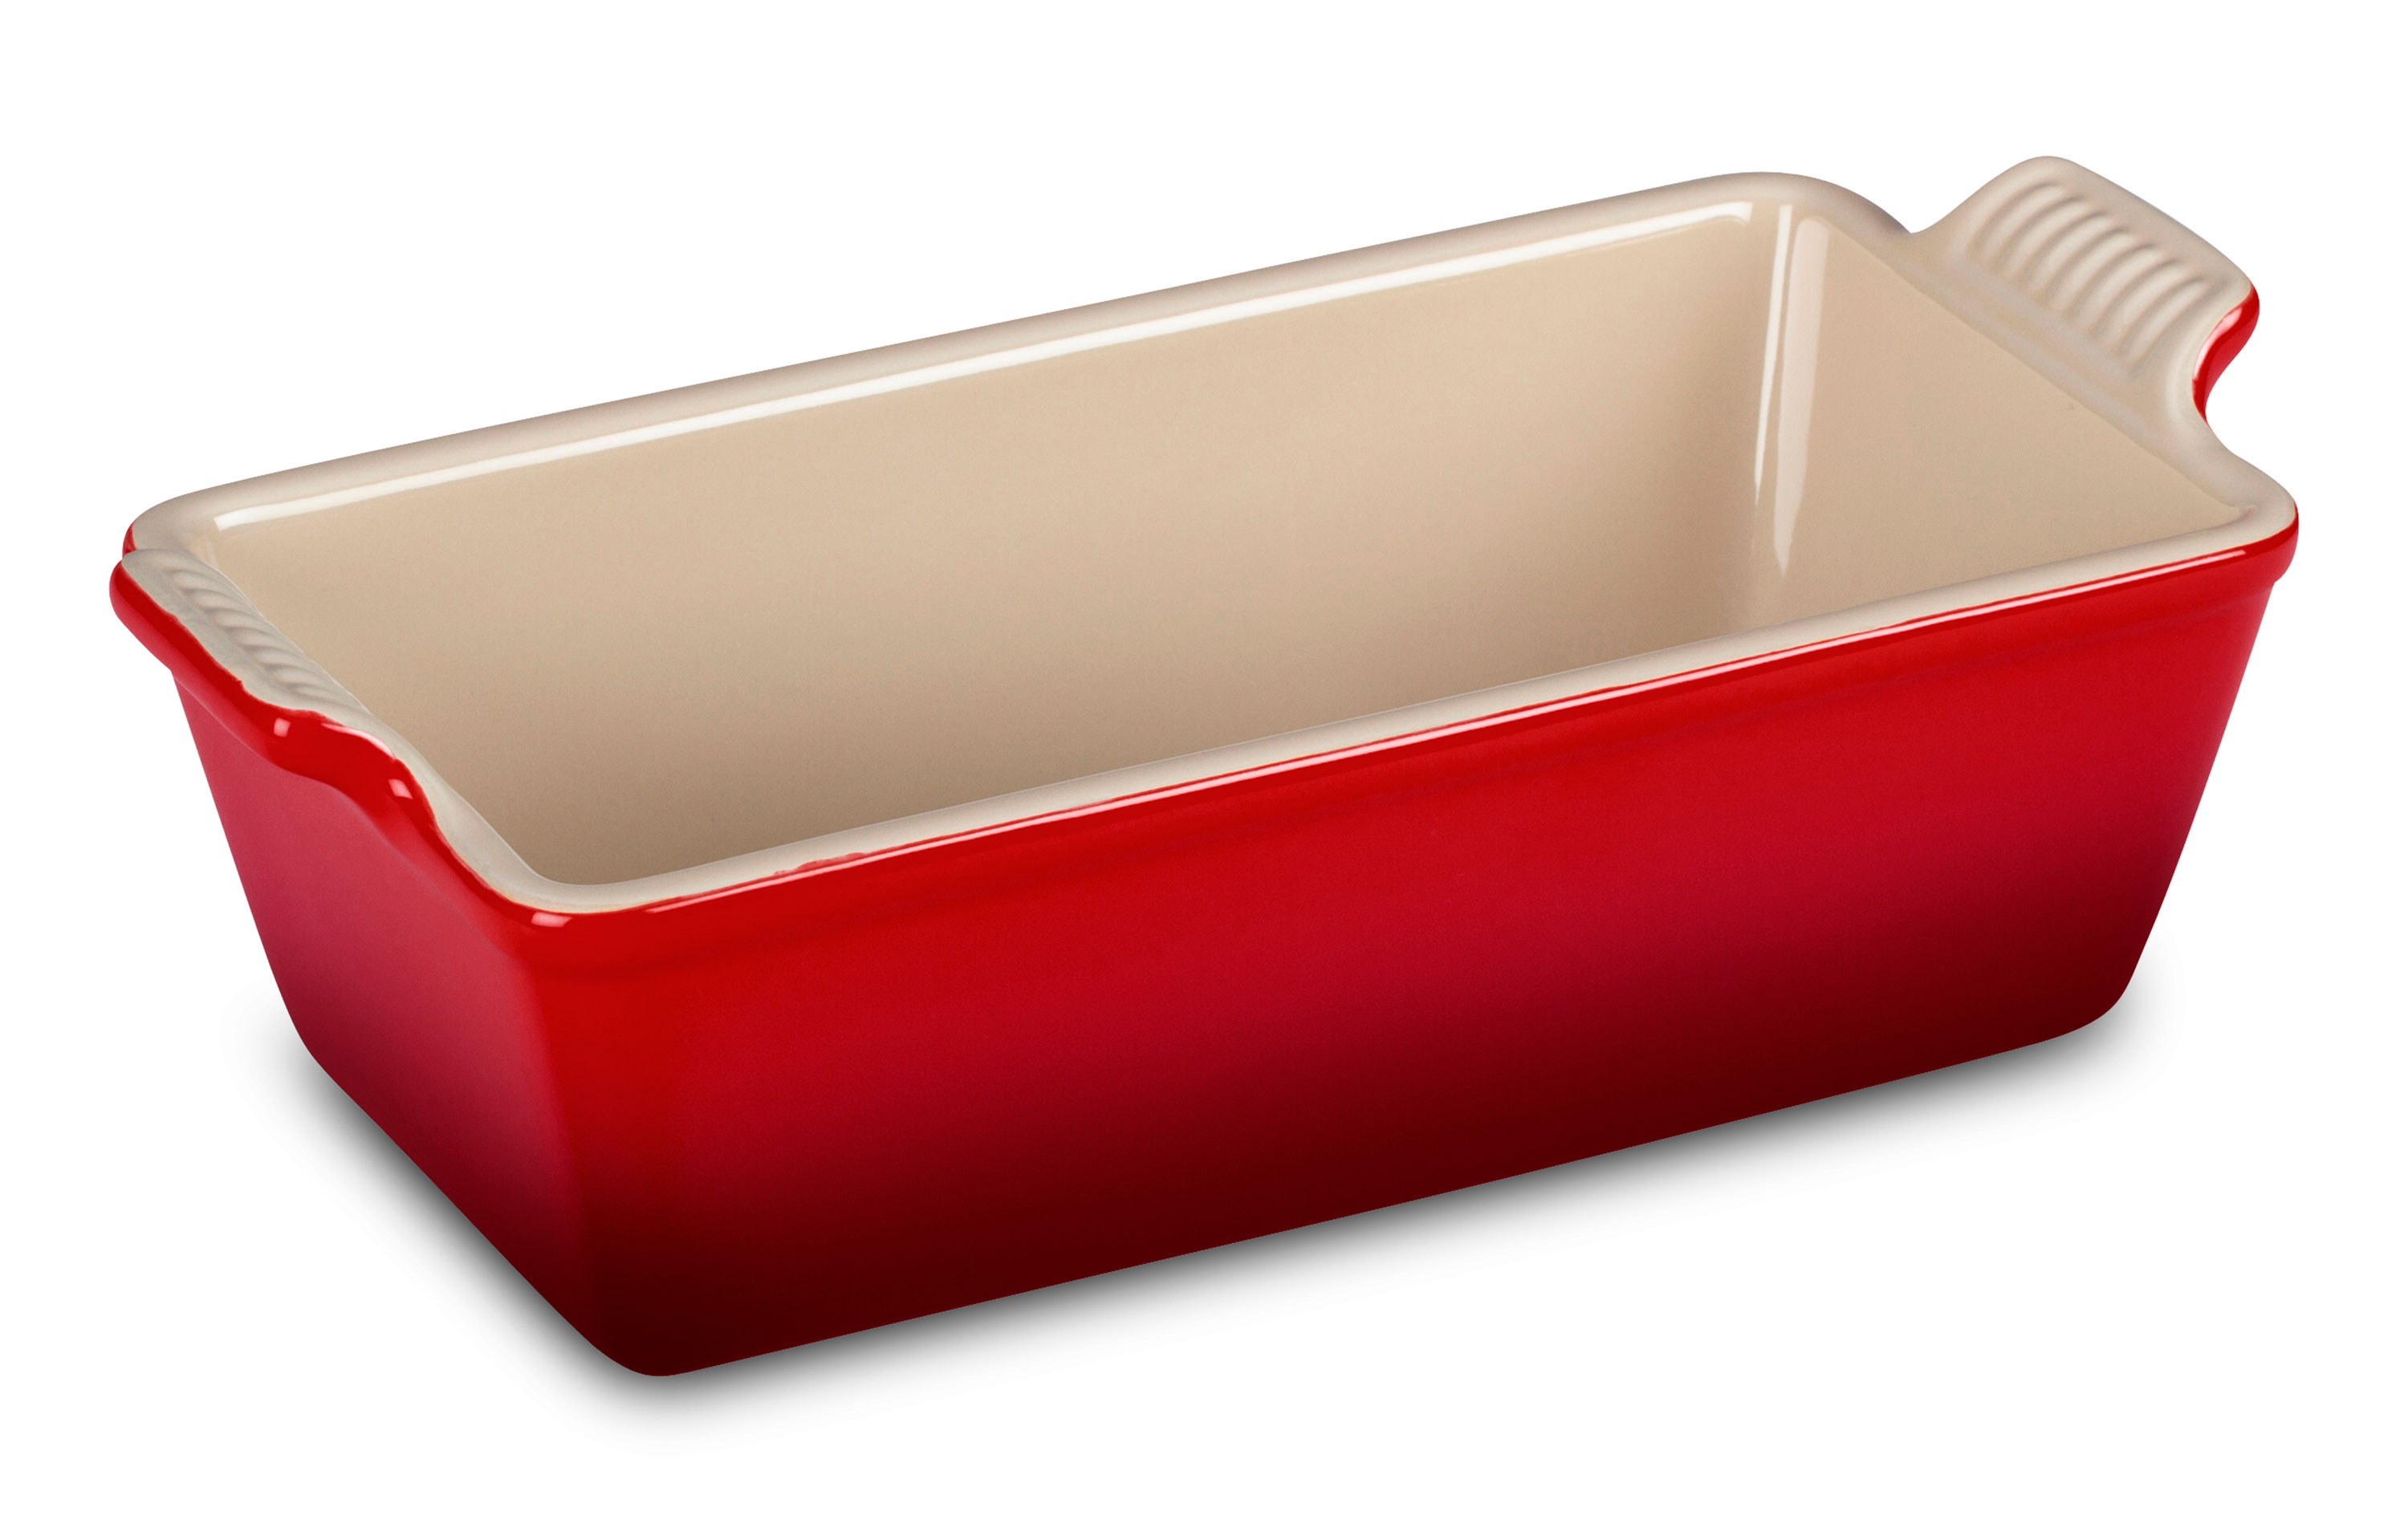 Le Creuset Stoneware Heritage Loaf Pan 9 X 5 X 3 Inch